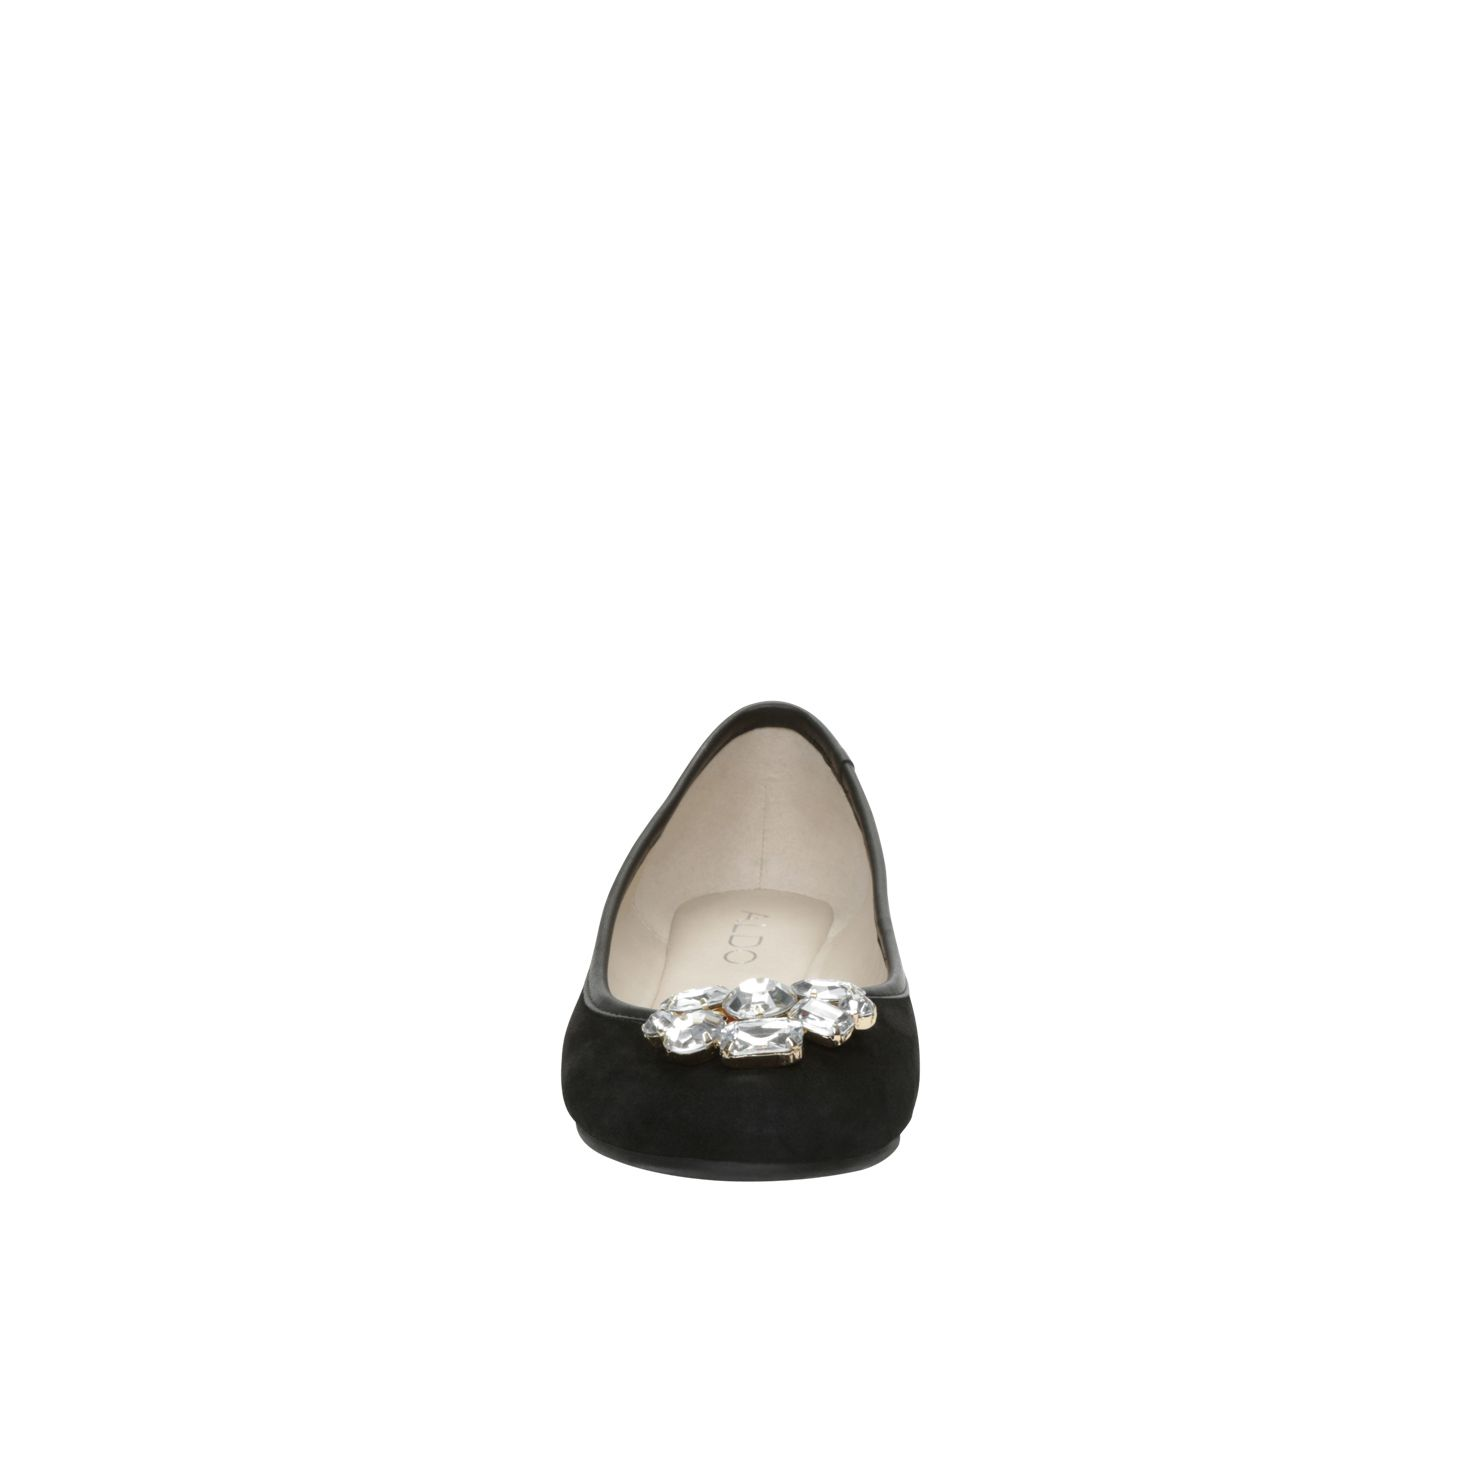 Adrirawien round toe pump shoes